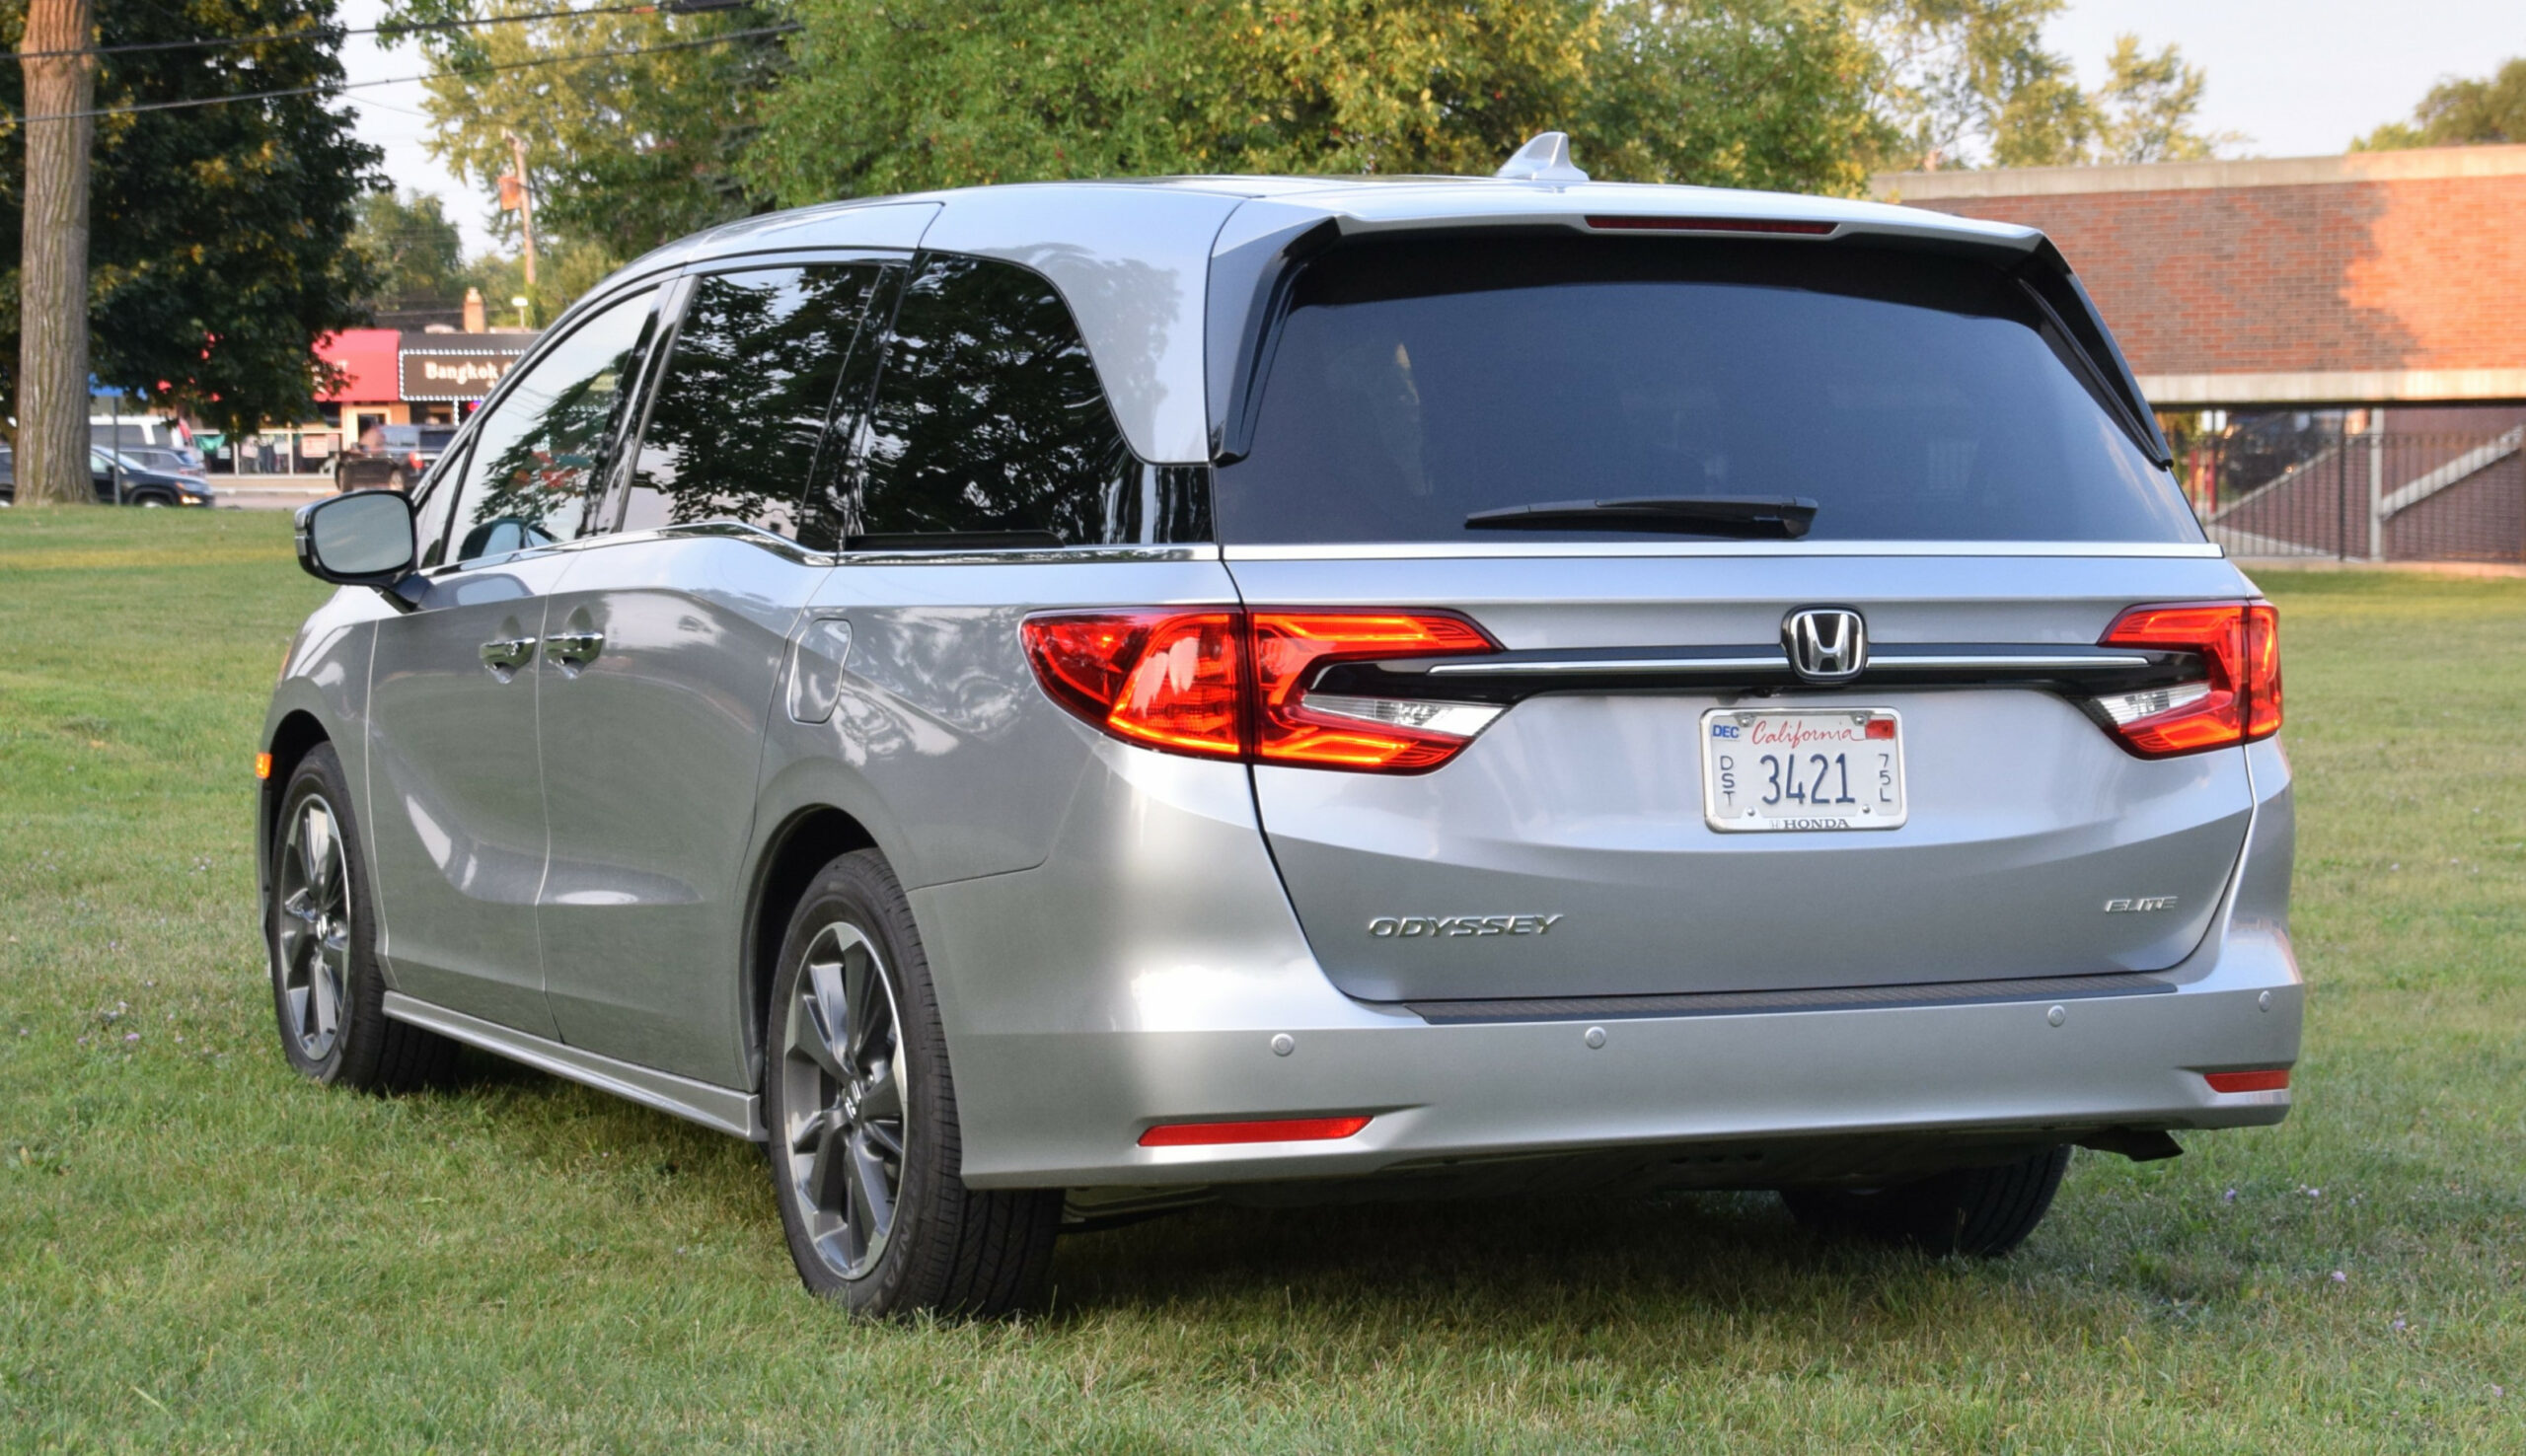 Picture When Does 2022 Honda Odyssey Come Out